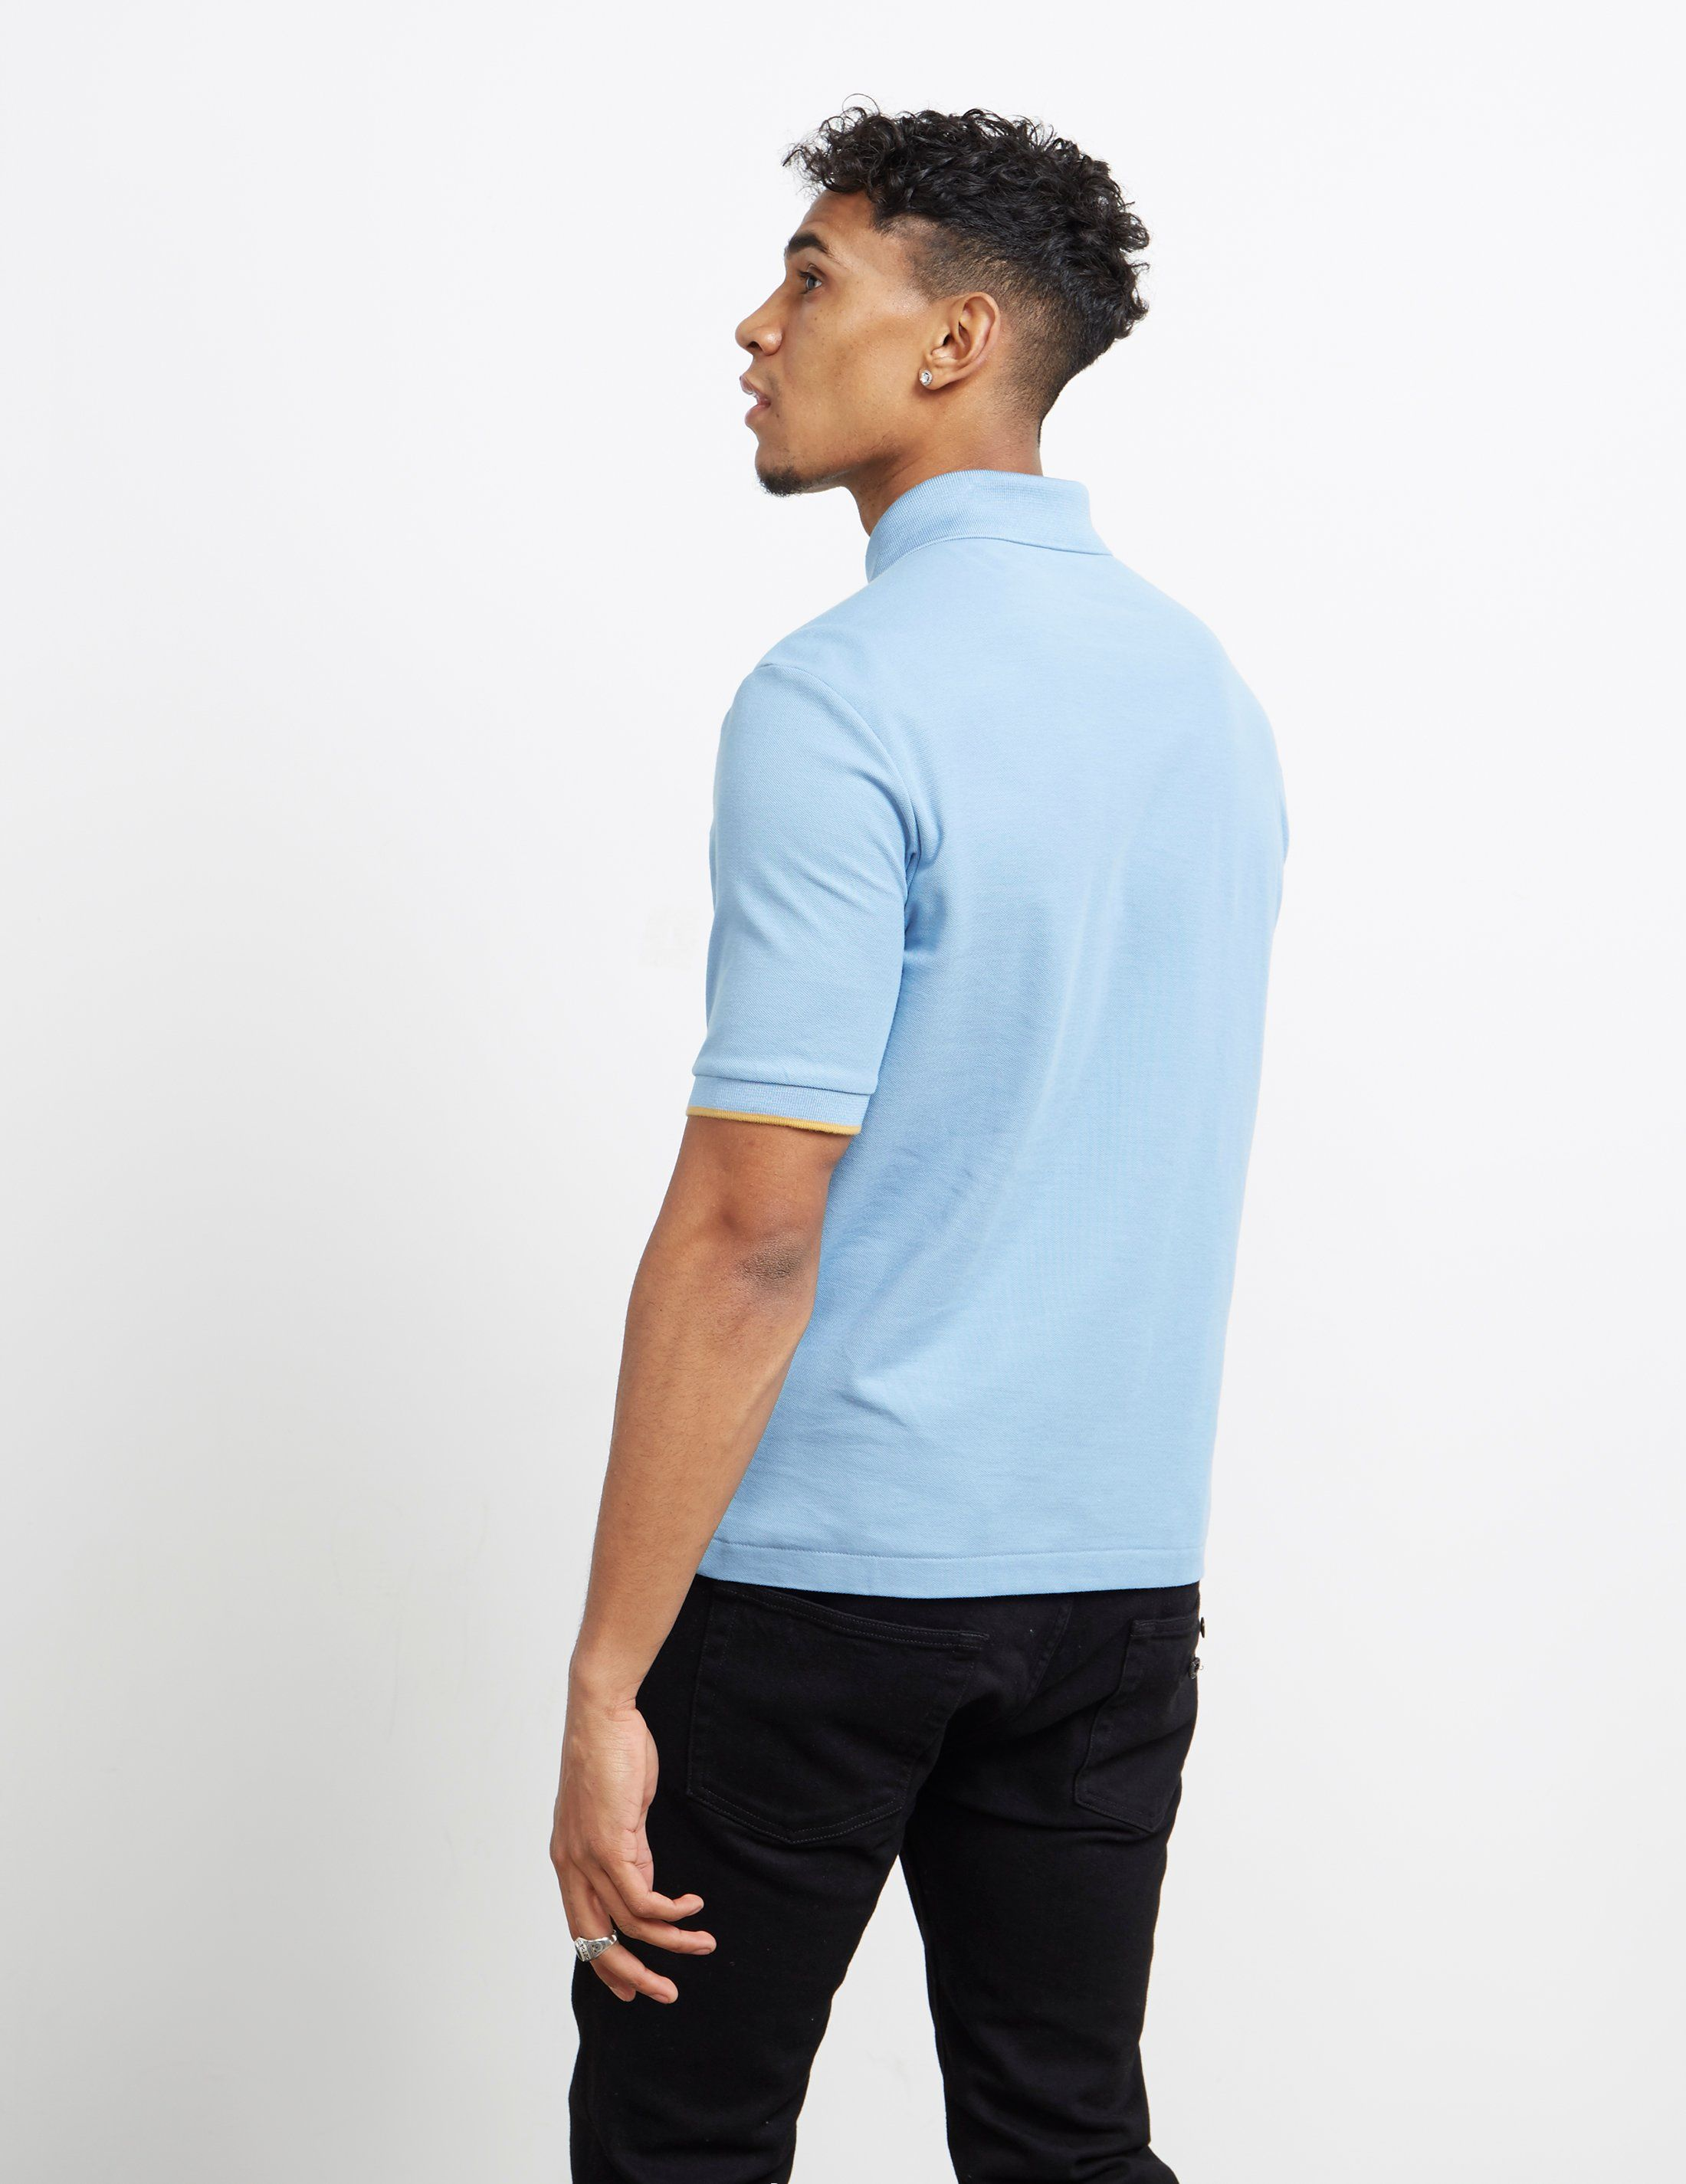 Fred Perry x Miles Kane Short Sleeve Zip Polo Shirt